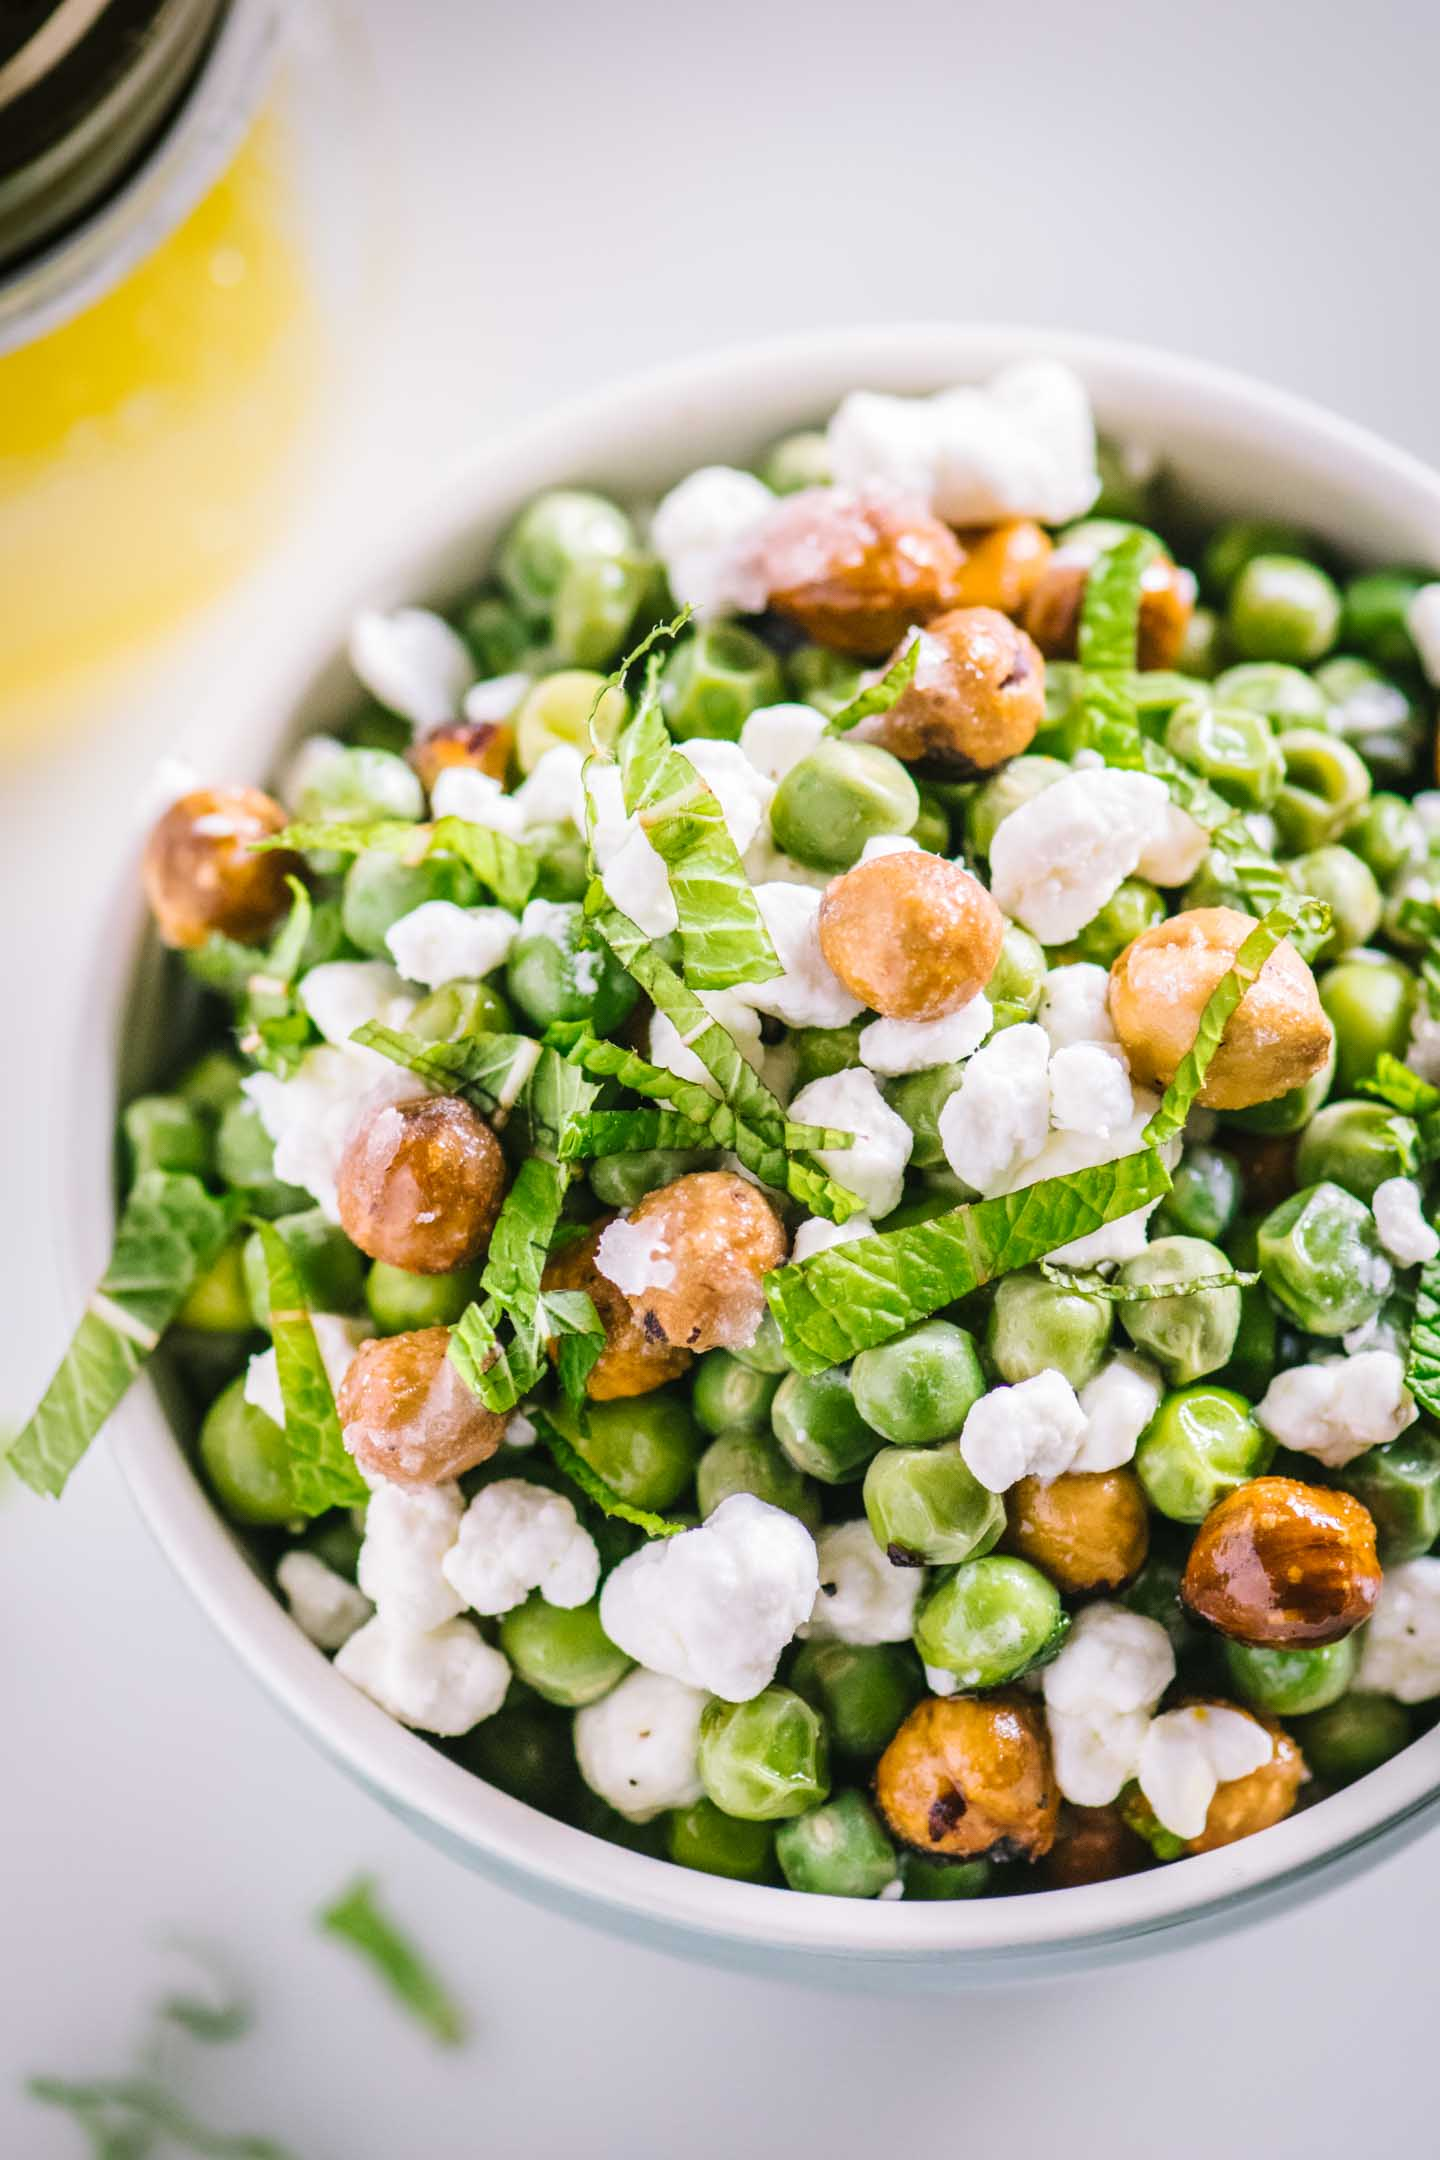 English pea salad topped with candied hazelnuts and goat cheese with a side of meyer lemon vinaigrette